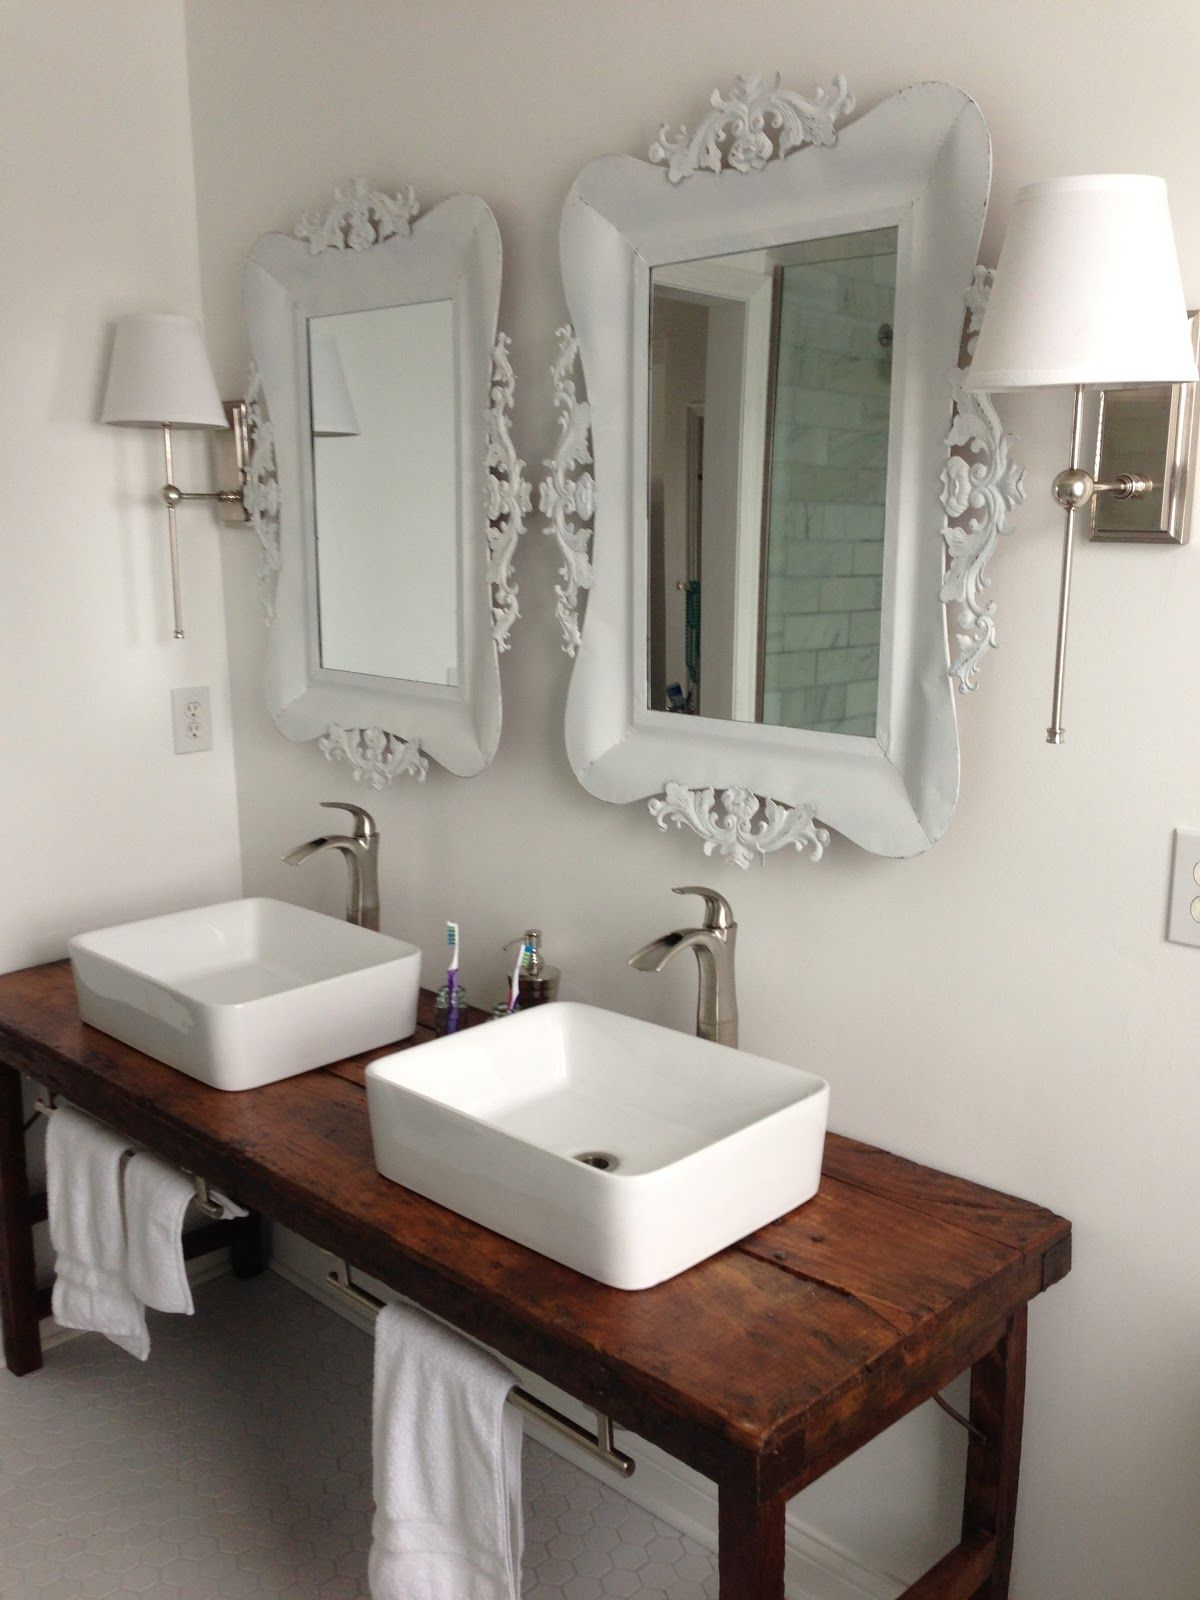 White Bathroom With Vessel Sinks And Wood Table As Vanity